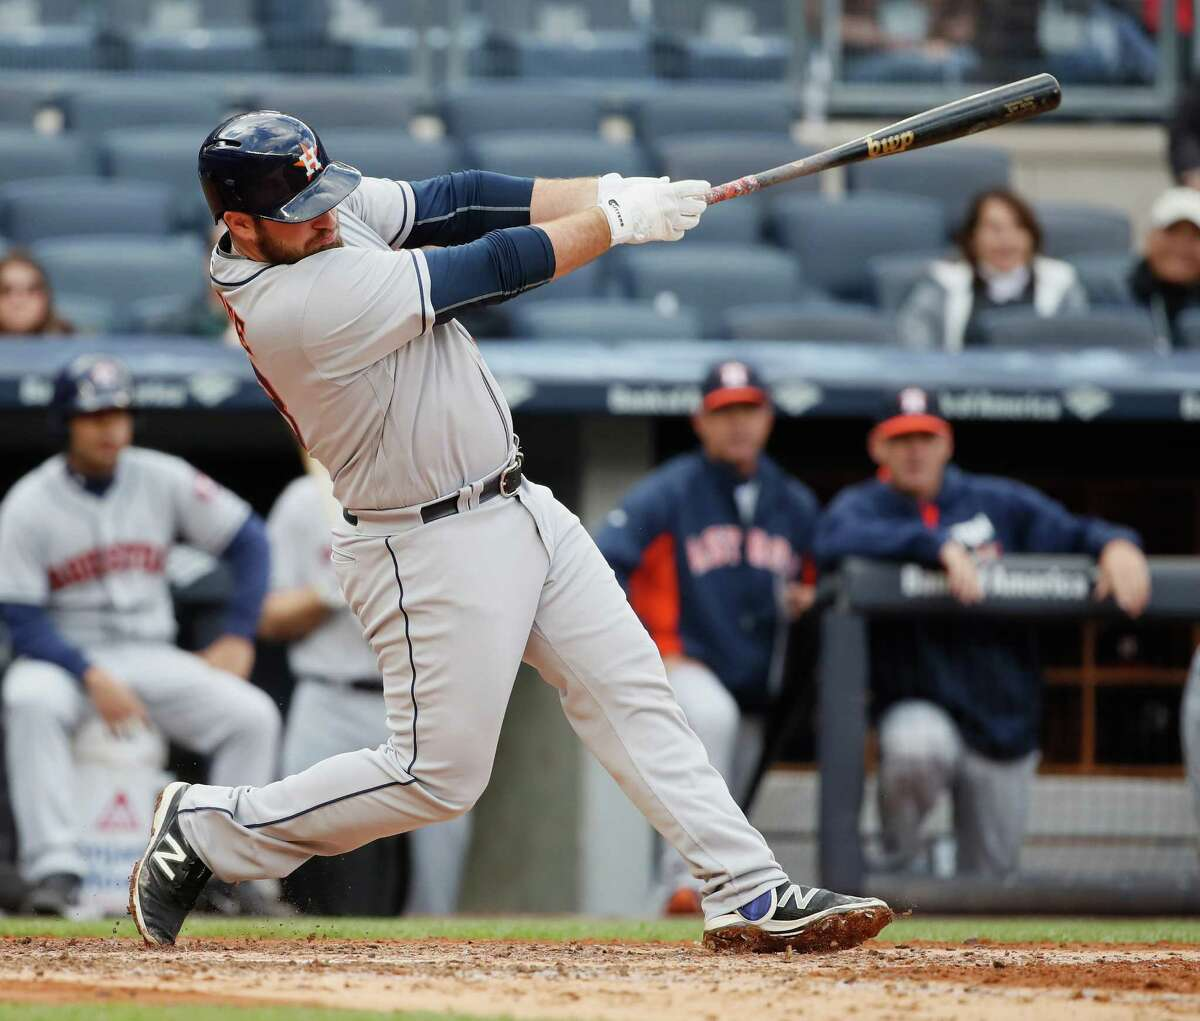 NEW YORK, NY - APRIL 07: Tyler White #13 of the Houston Astros hits a two run single against the New York Yankees in the fourth inning during their game at Yankee Stadium on April 7, 2016 in New York City.